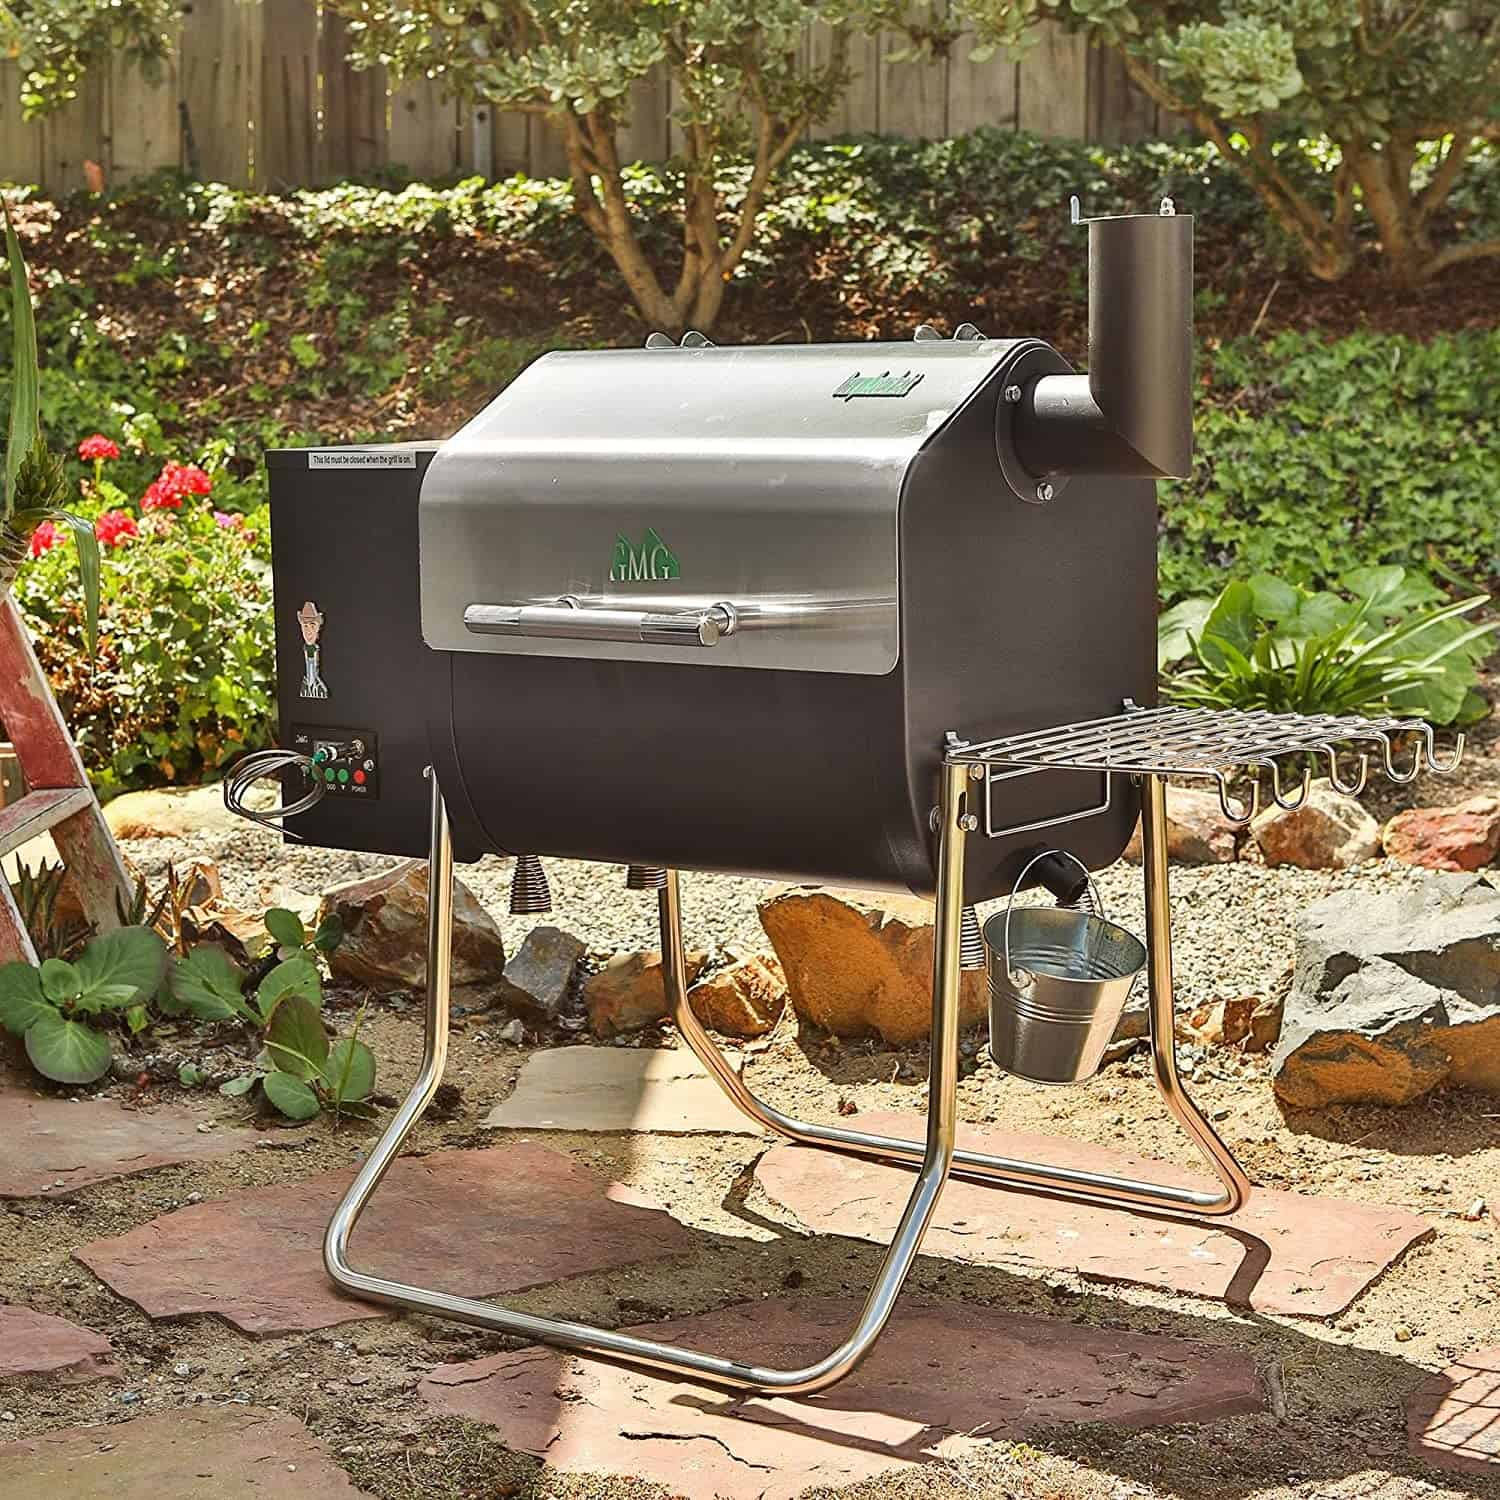 Best cheap budget pellet smoker: Green Mountain Davy Crockett